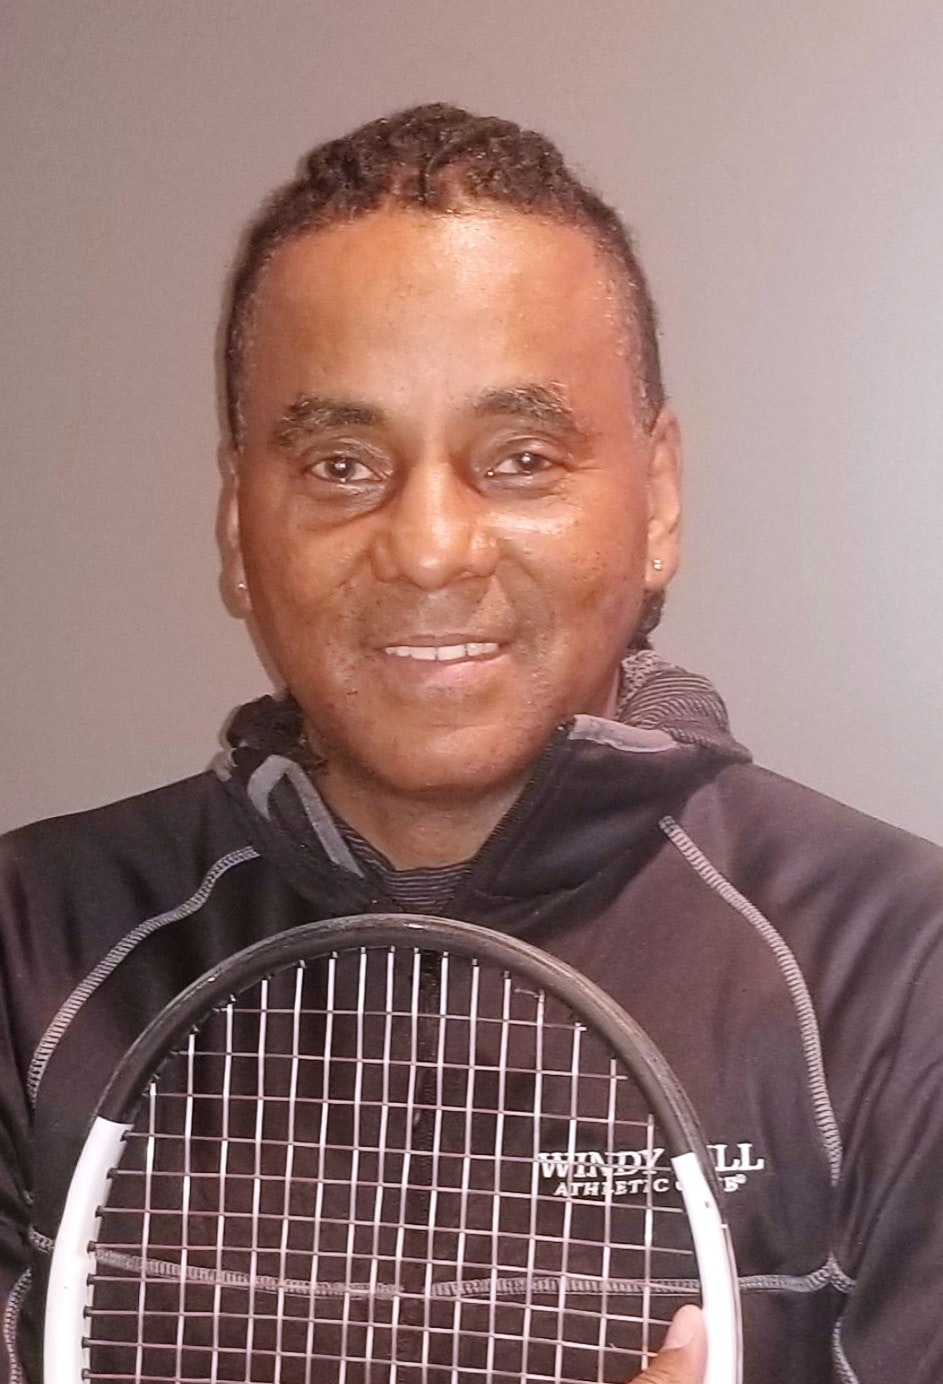 Ted N. teaches tennis lessons in Atlanta, GA